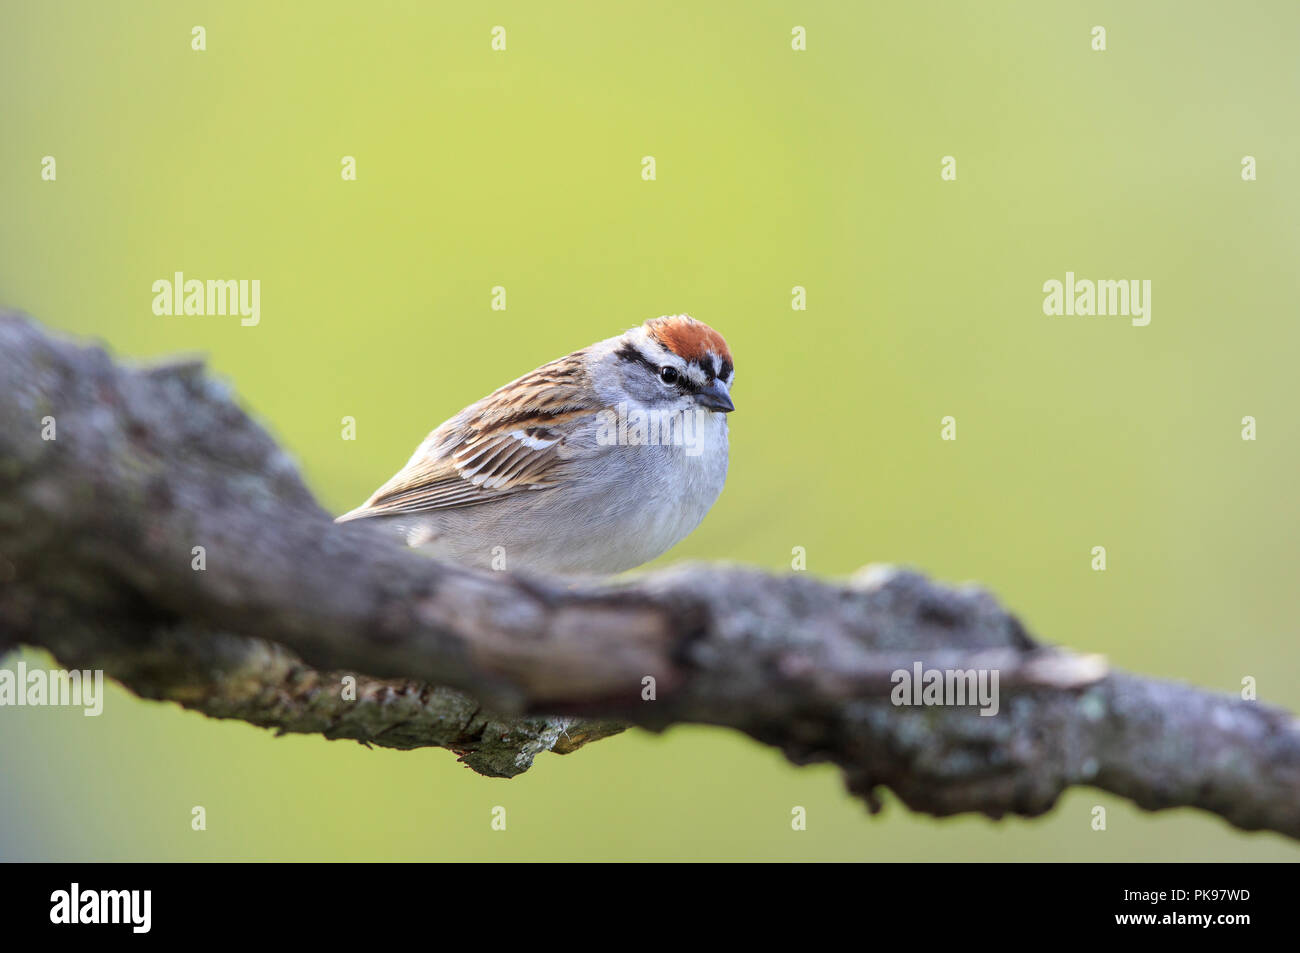 Chipping sparrow (Spizella passerina) on tree branch - Stock Image